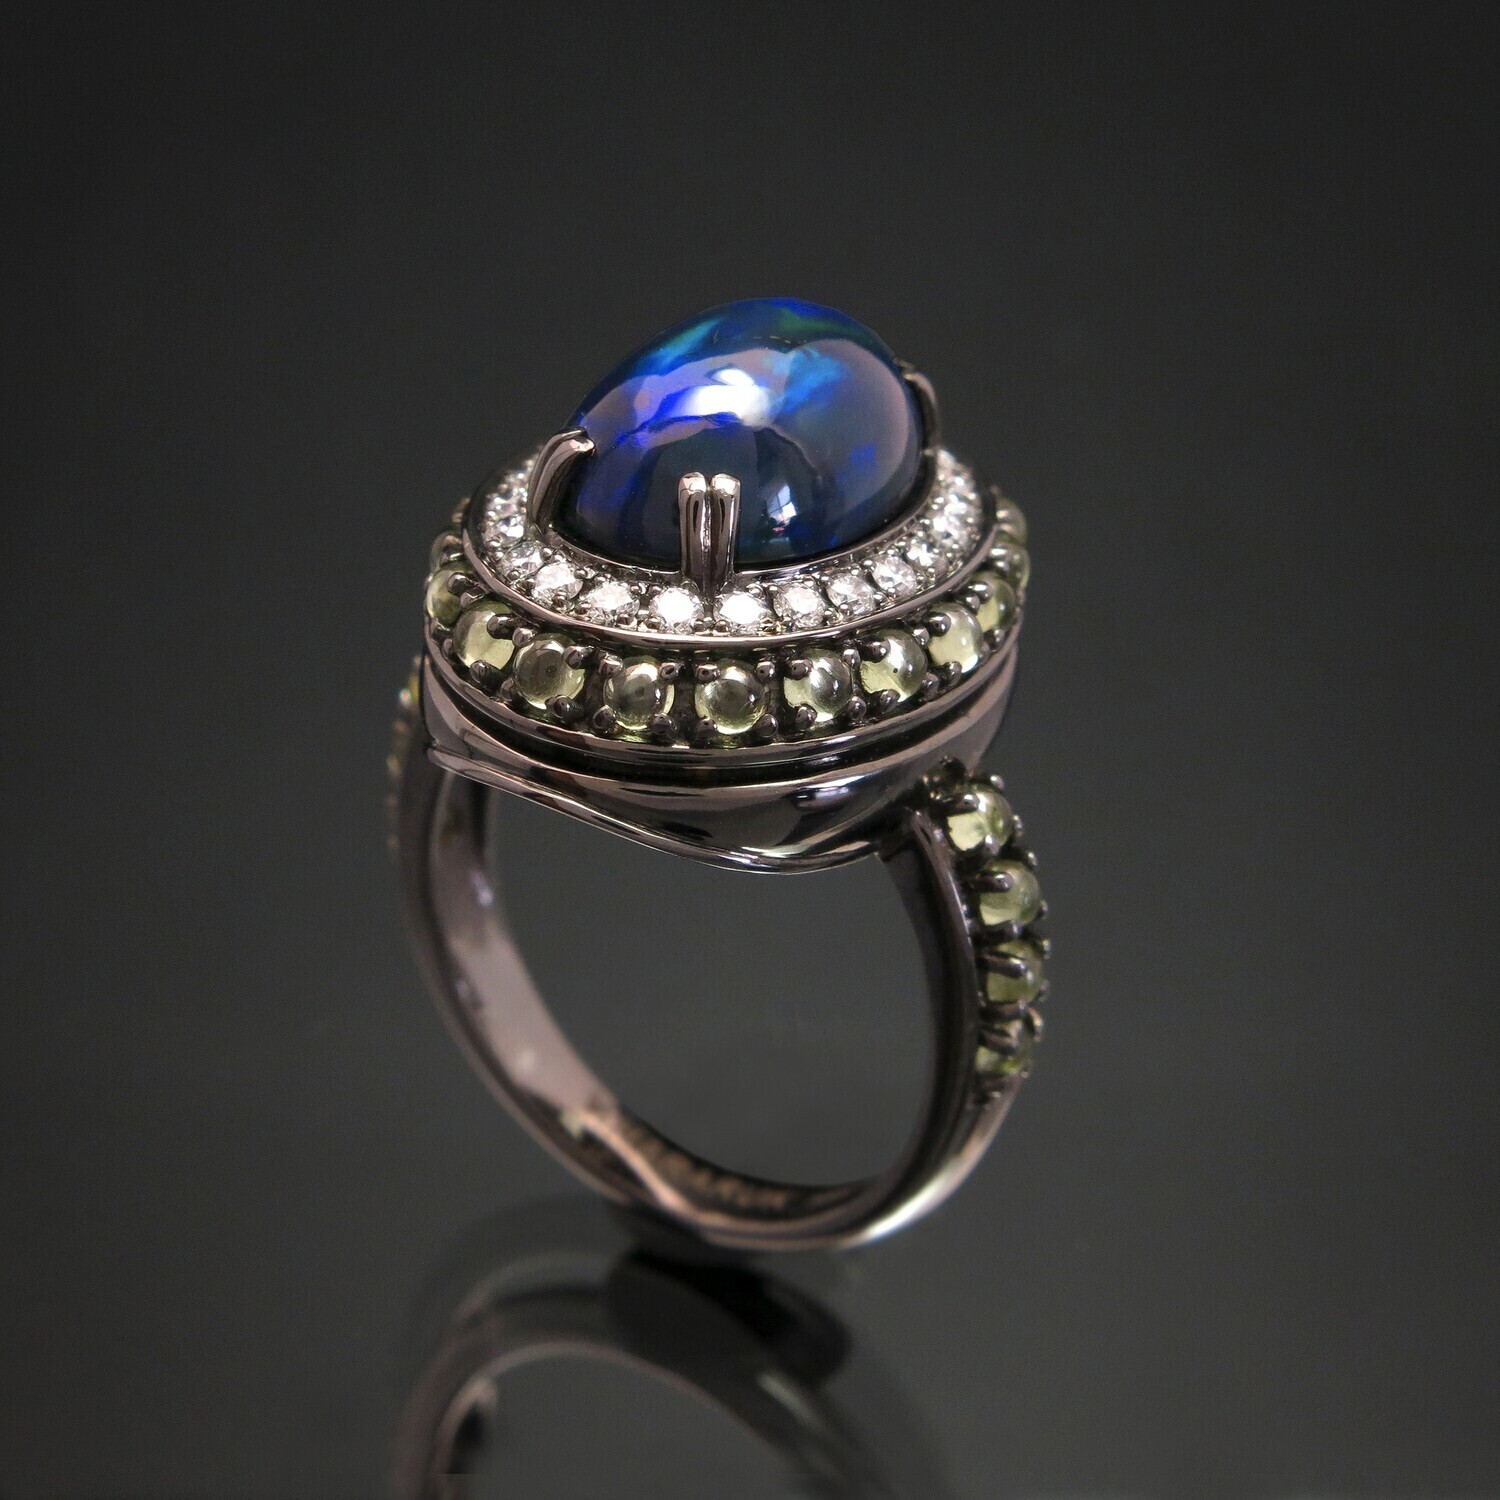 14K Gold Ring with Opals, Diamonds and Chrysolite, VH006